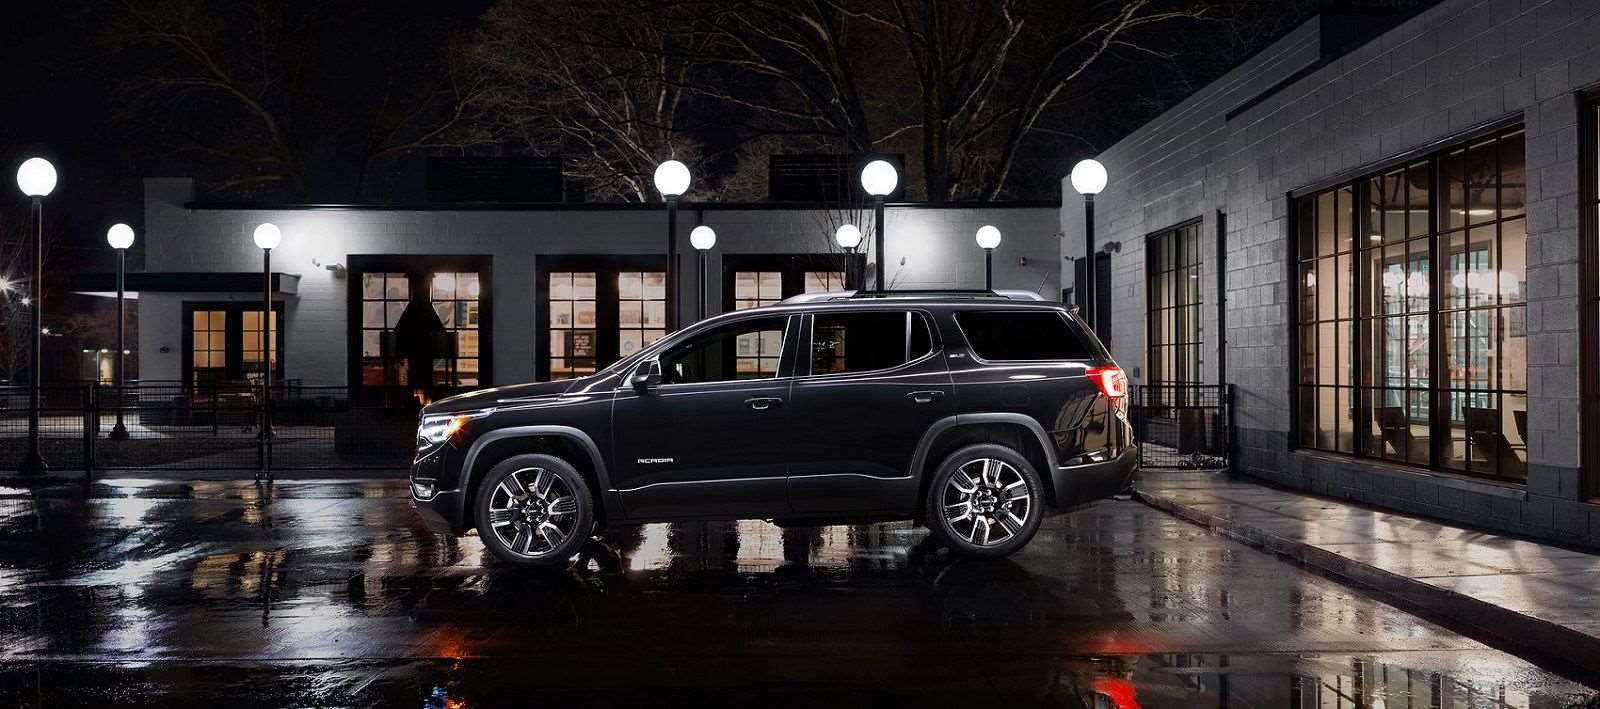 2019 GMC Acadia | Estherville IA, Carroll IA, and Knoxville IA